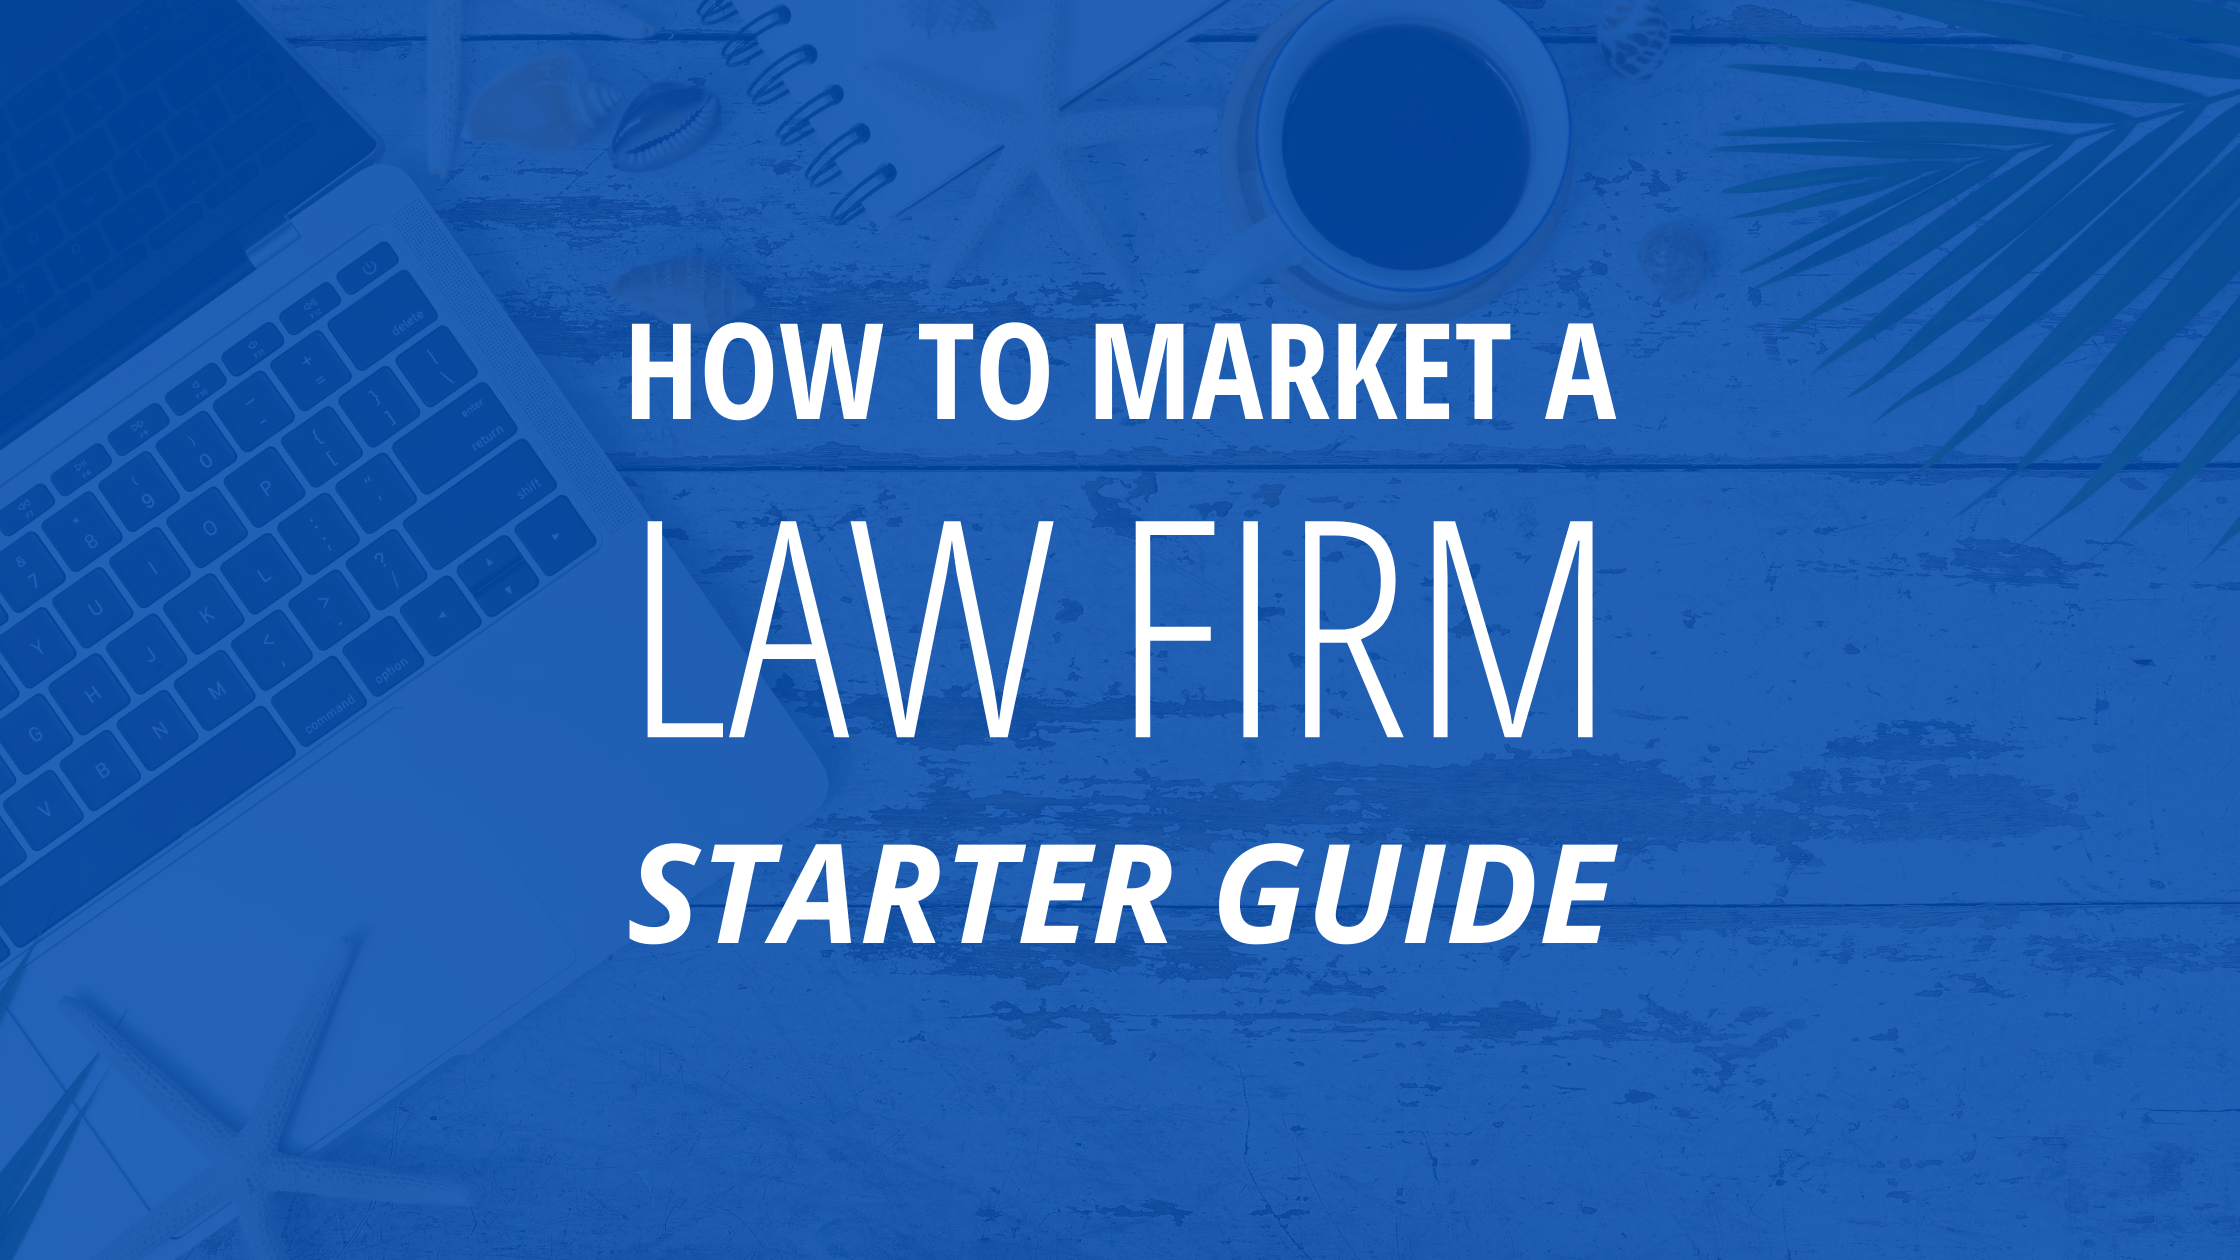 How To Market a Law Firm